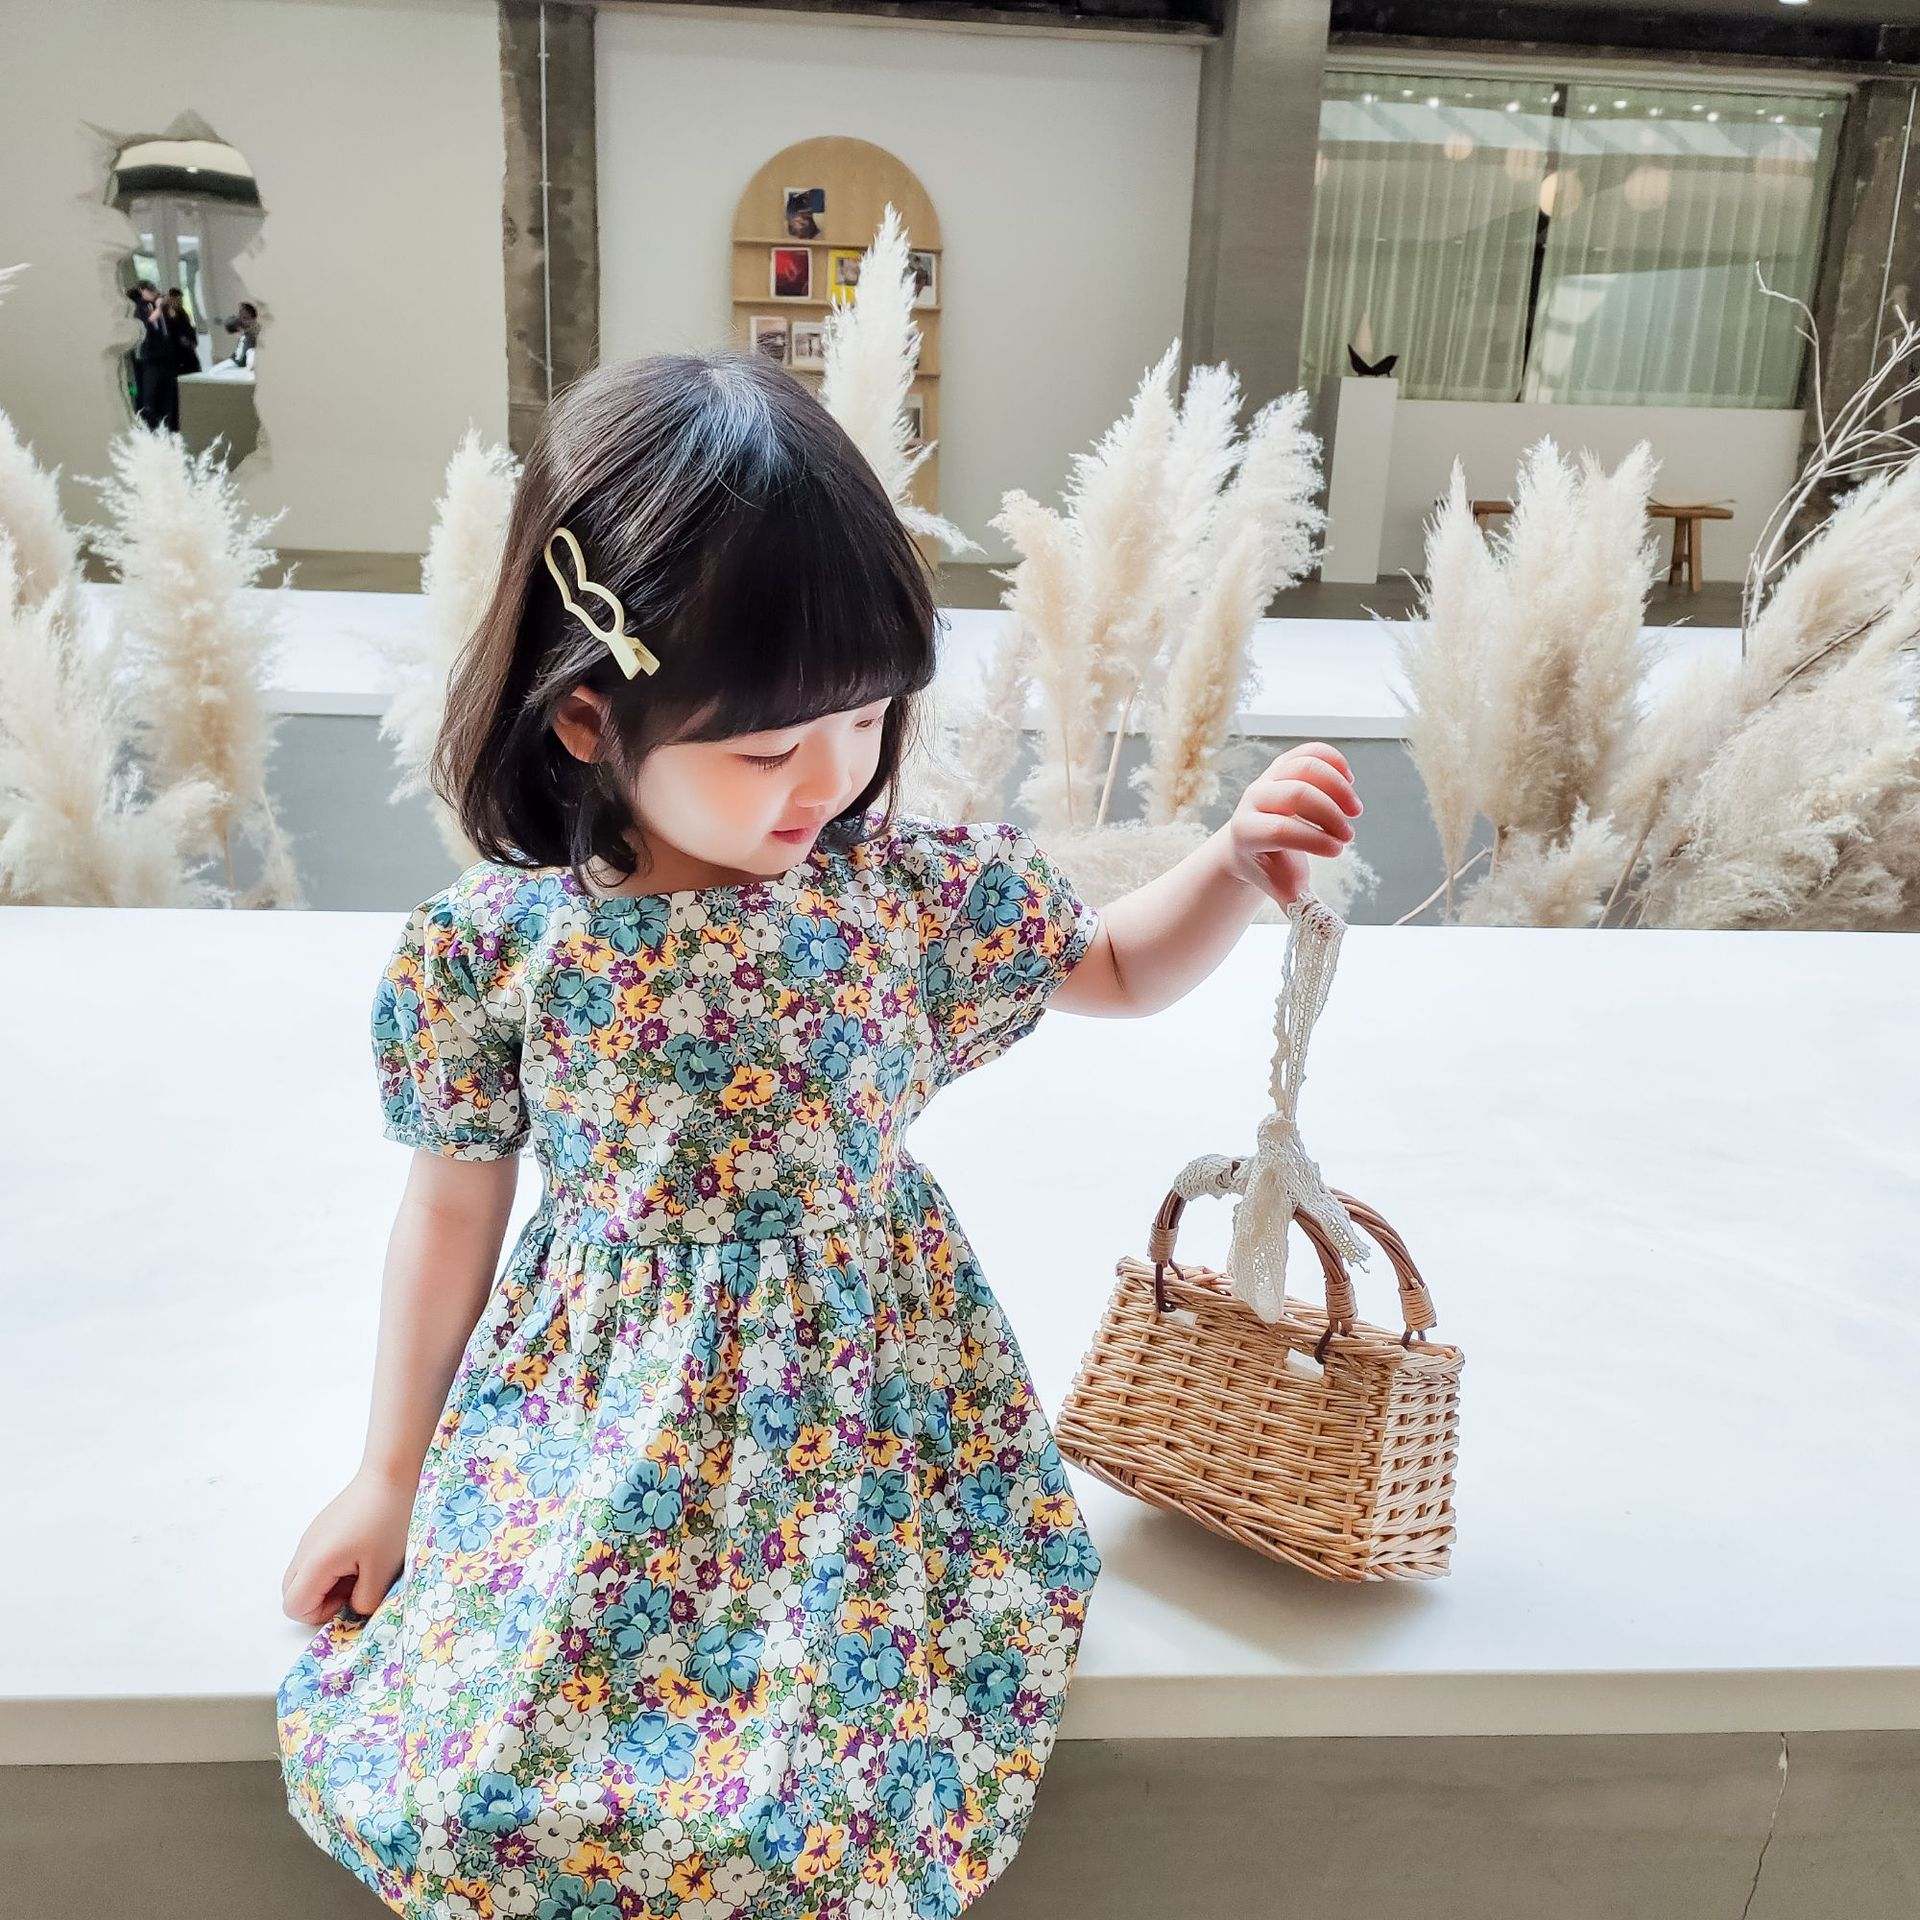 2020 Summer Girls Dress Cotton Casual Ruched Short Print Knee-Length Pastoral Style Fashion Dress